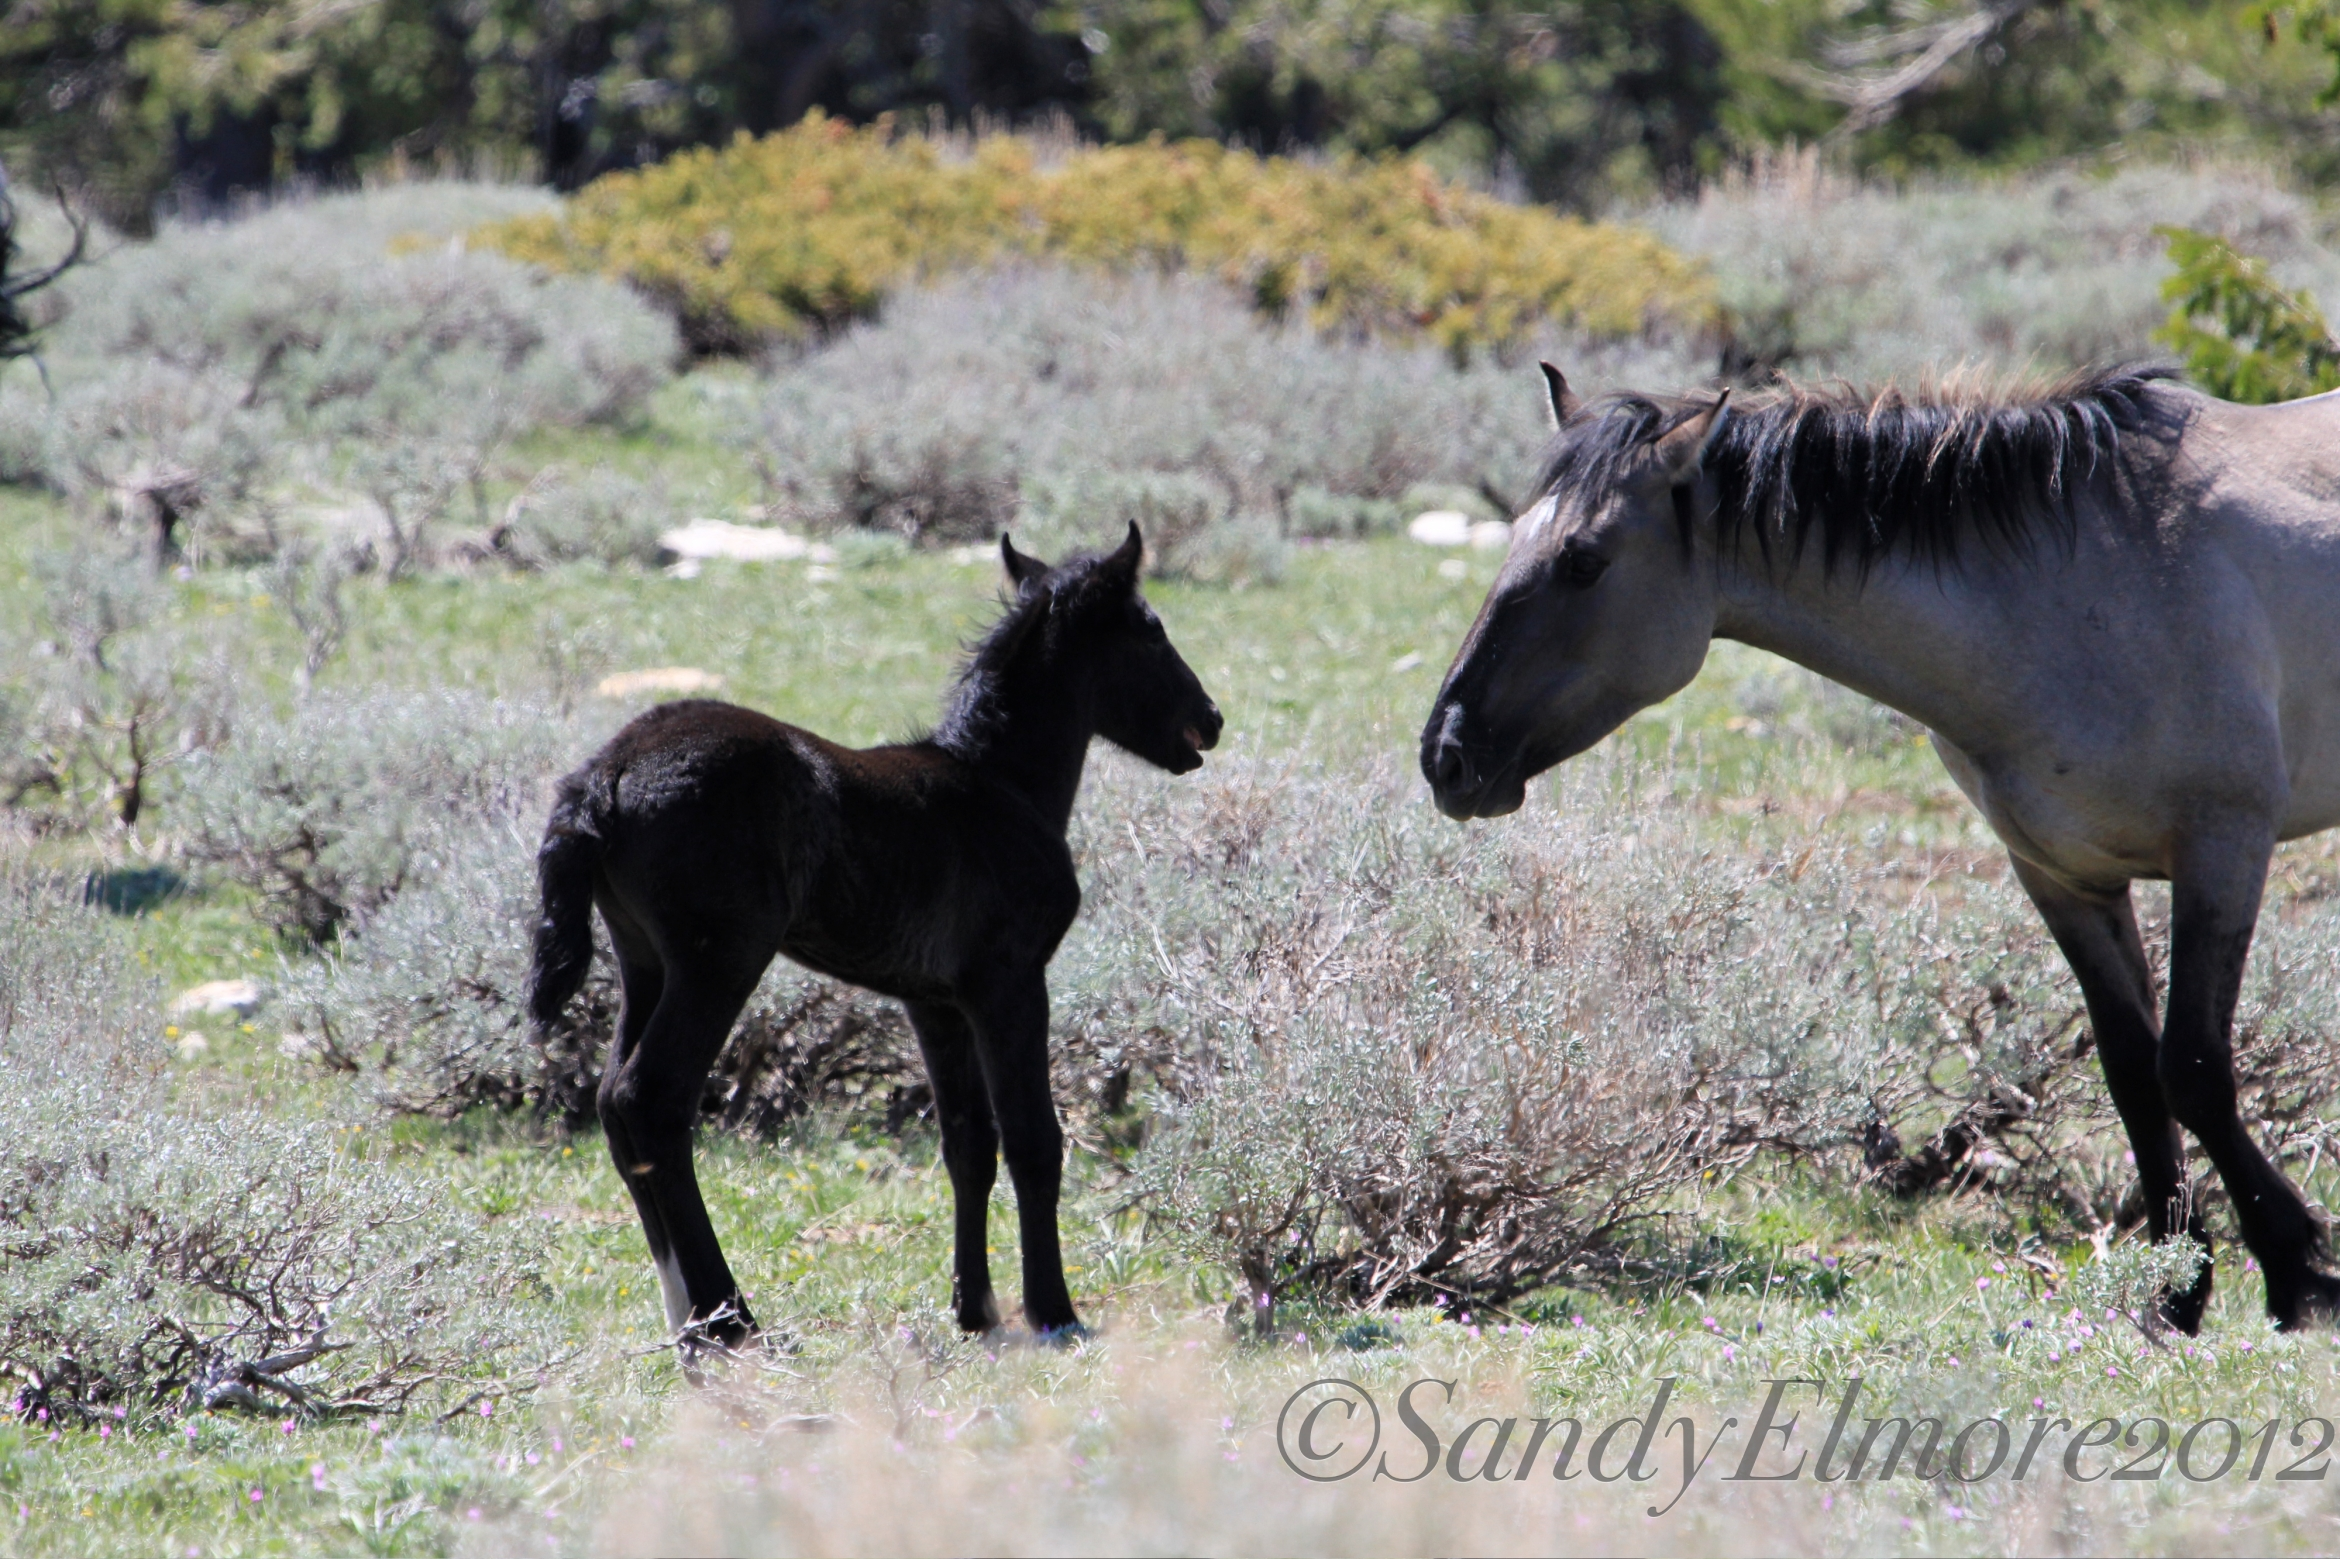 Demure's foal and Jenny, May 20, 2012